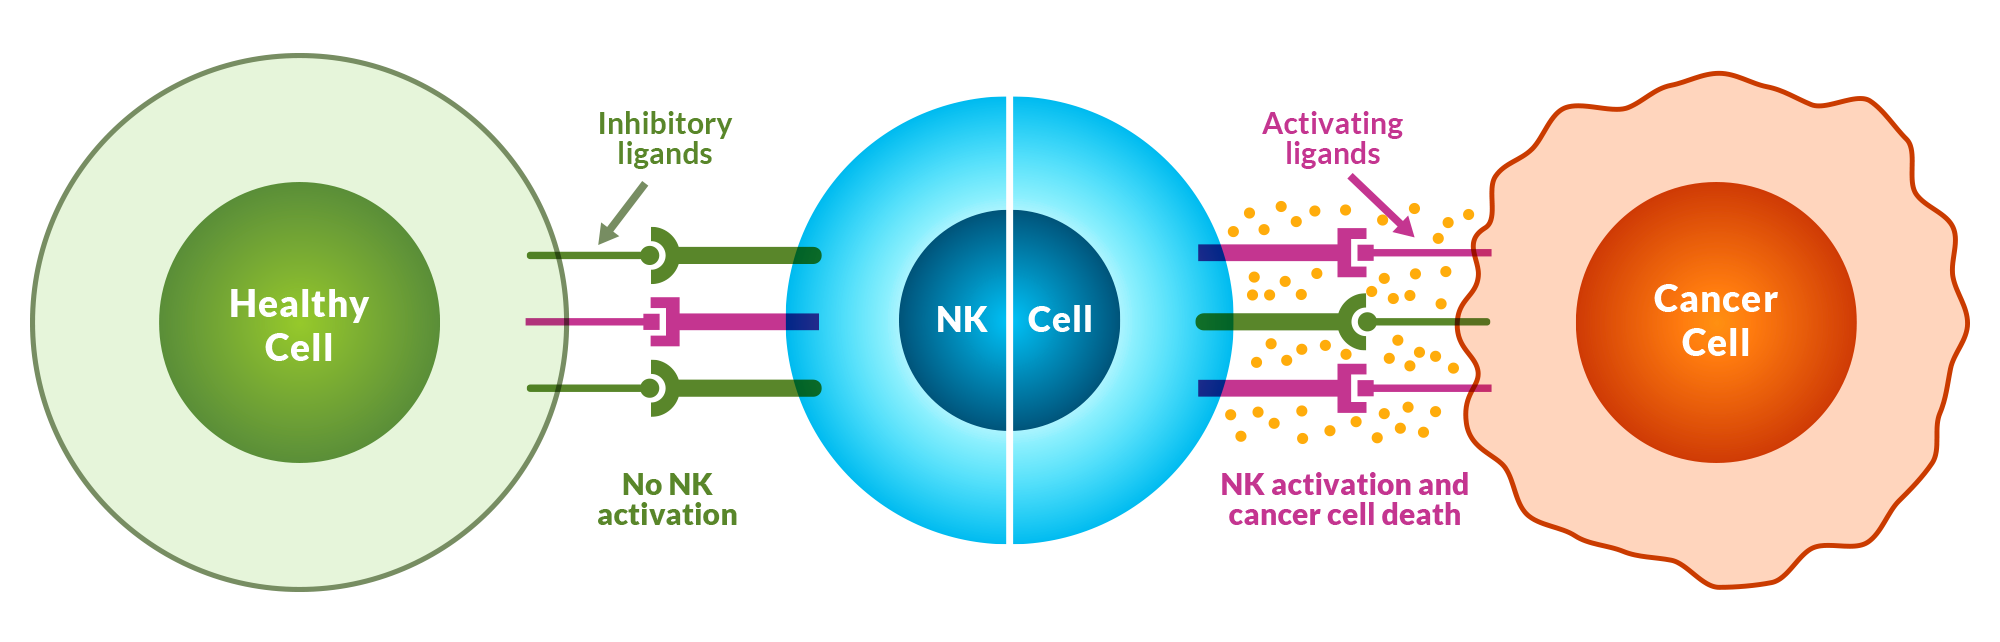 natural killer cells image